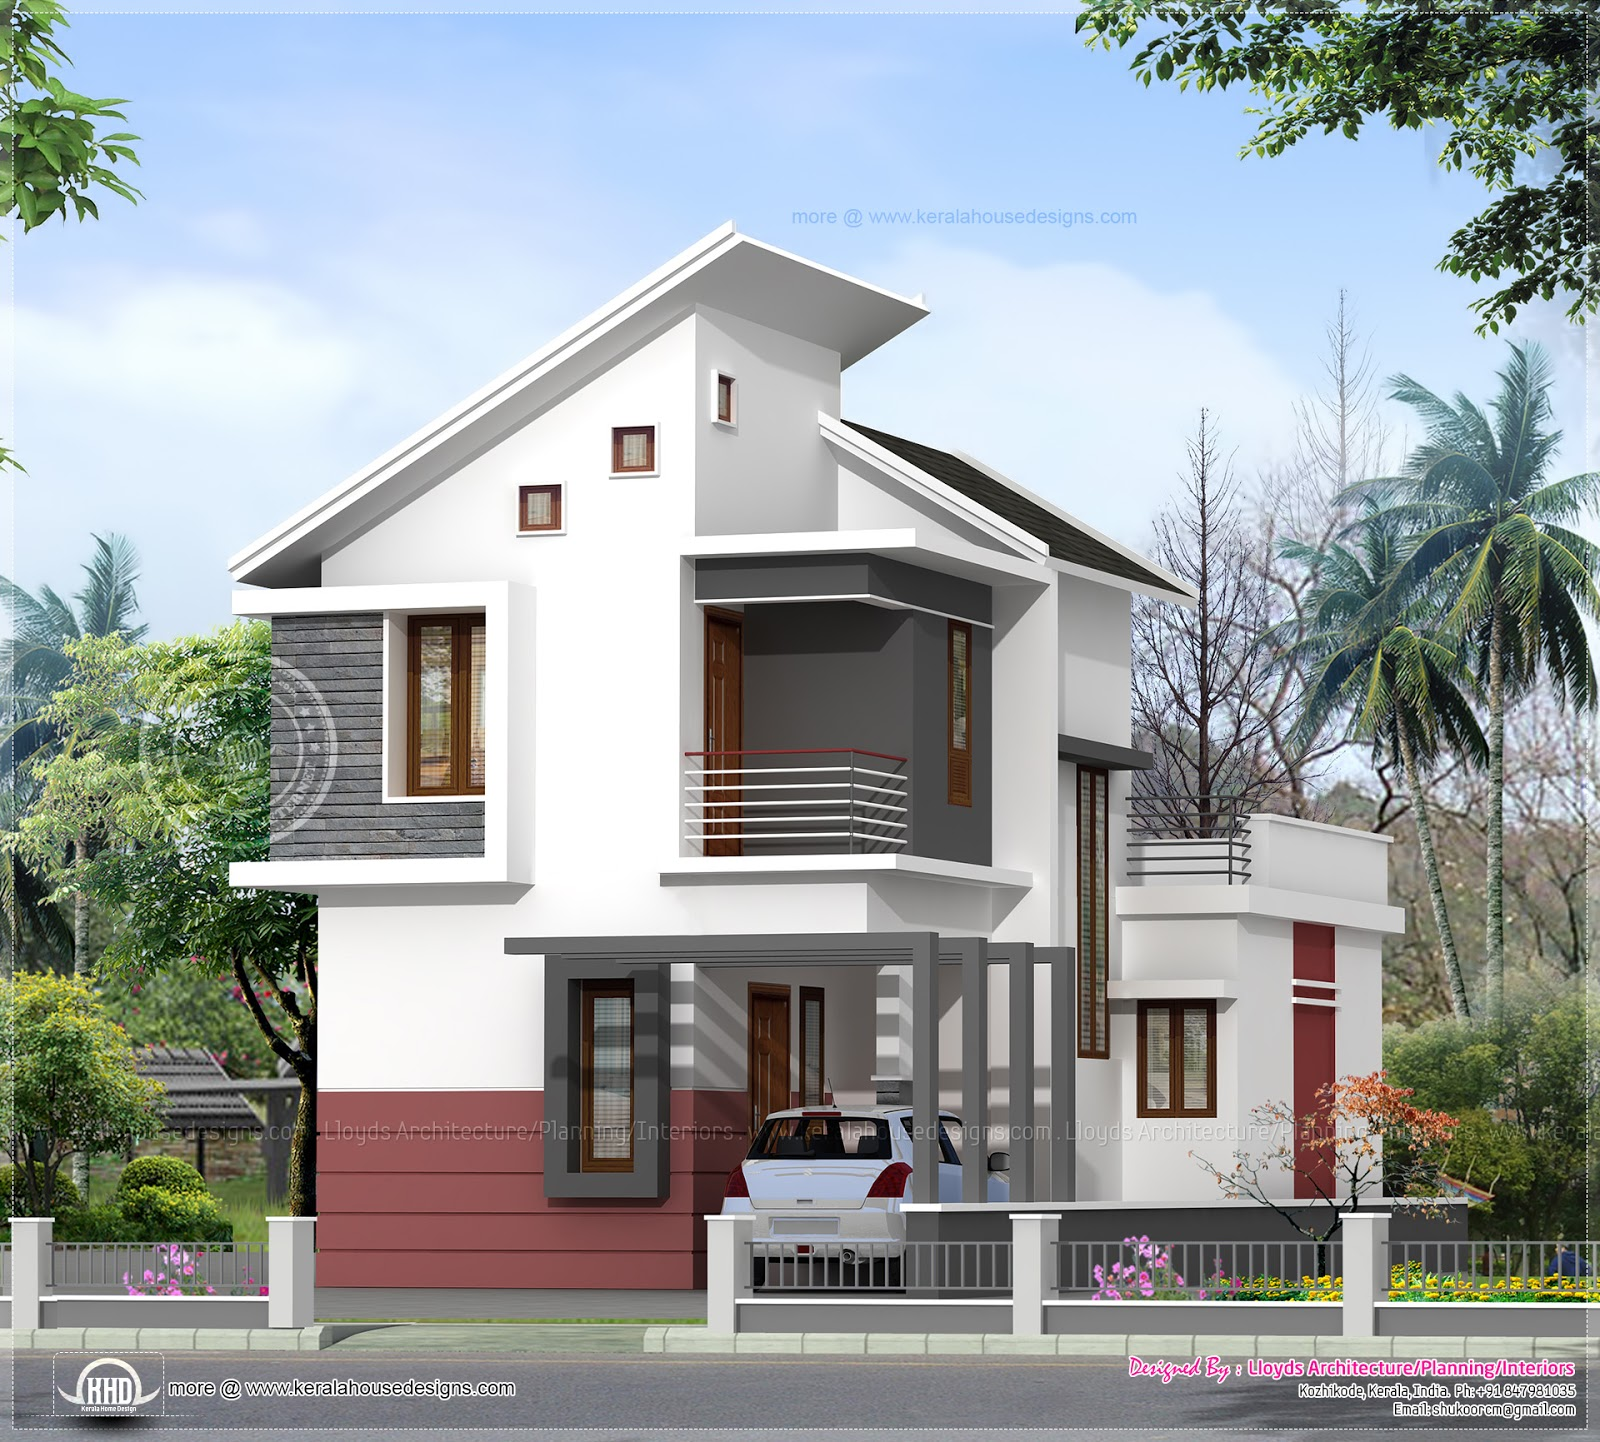 1197 sq ft 3 bedroom villa in 3 cents plot kerala home